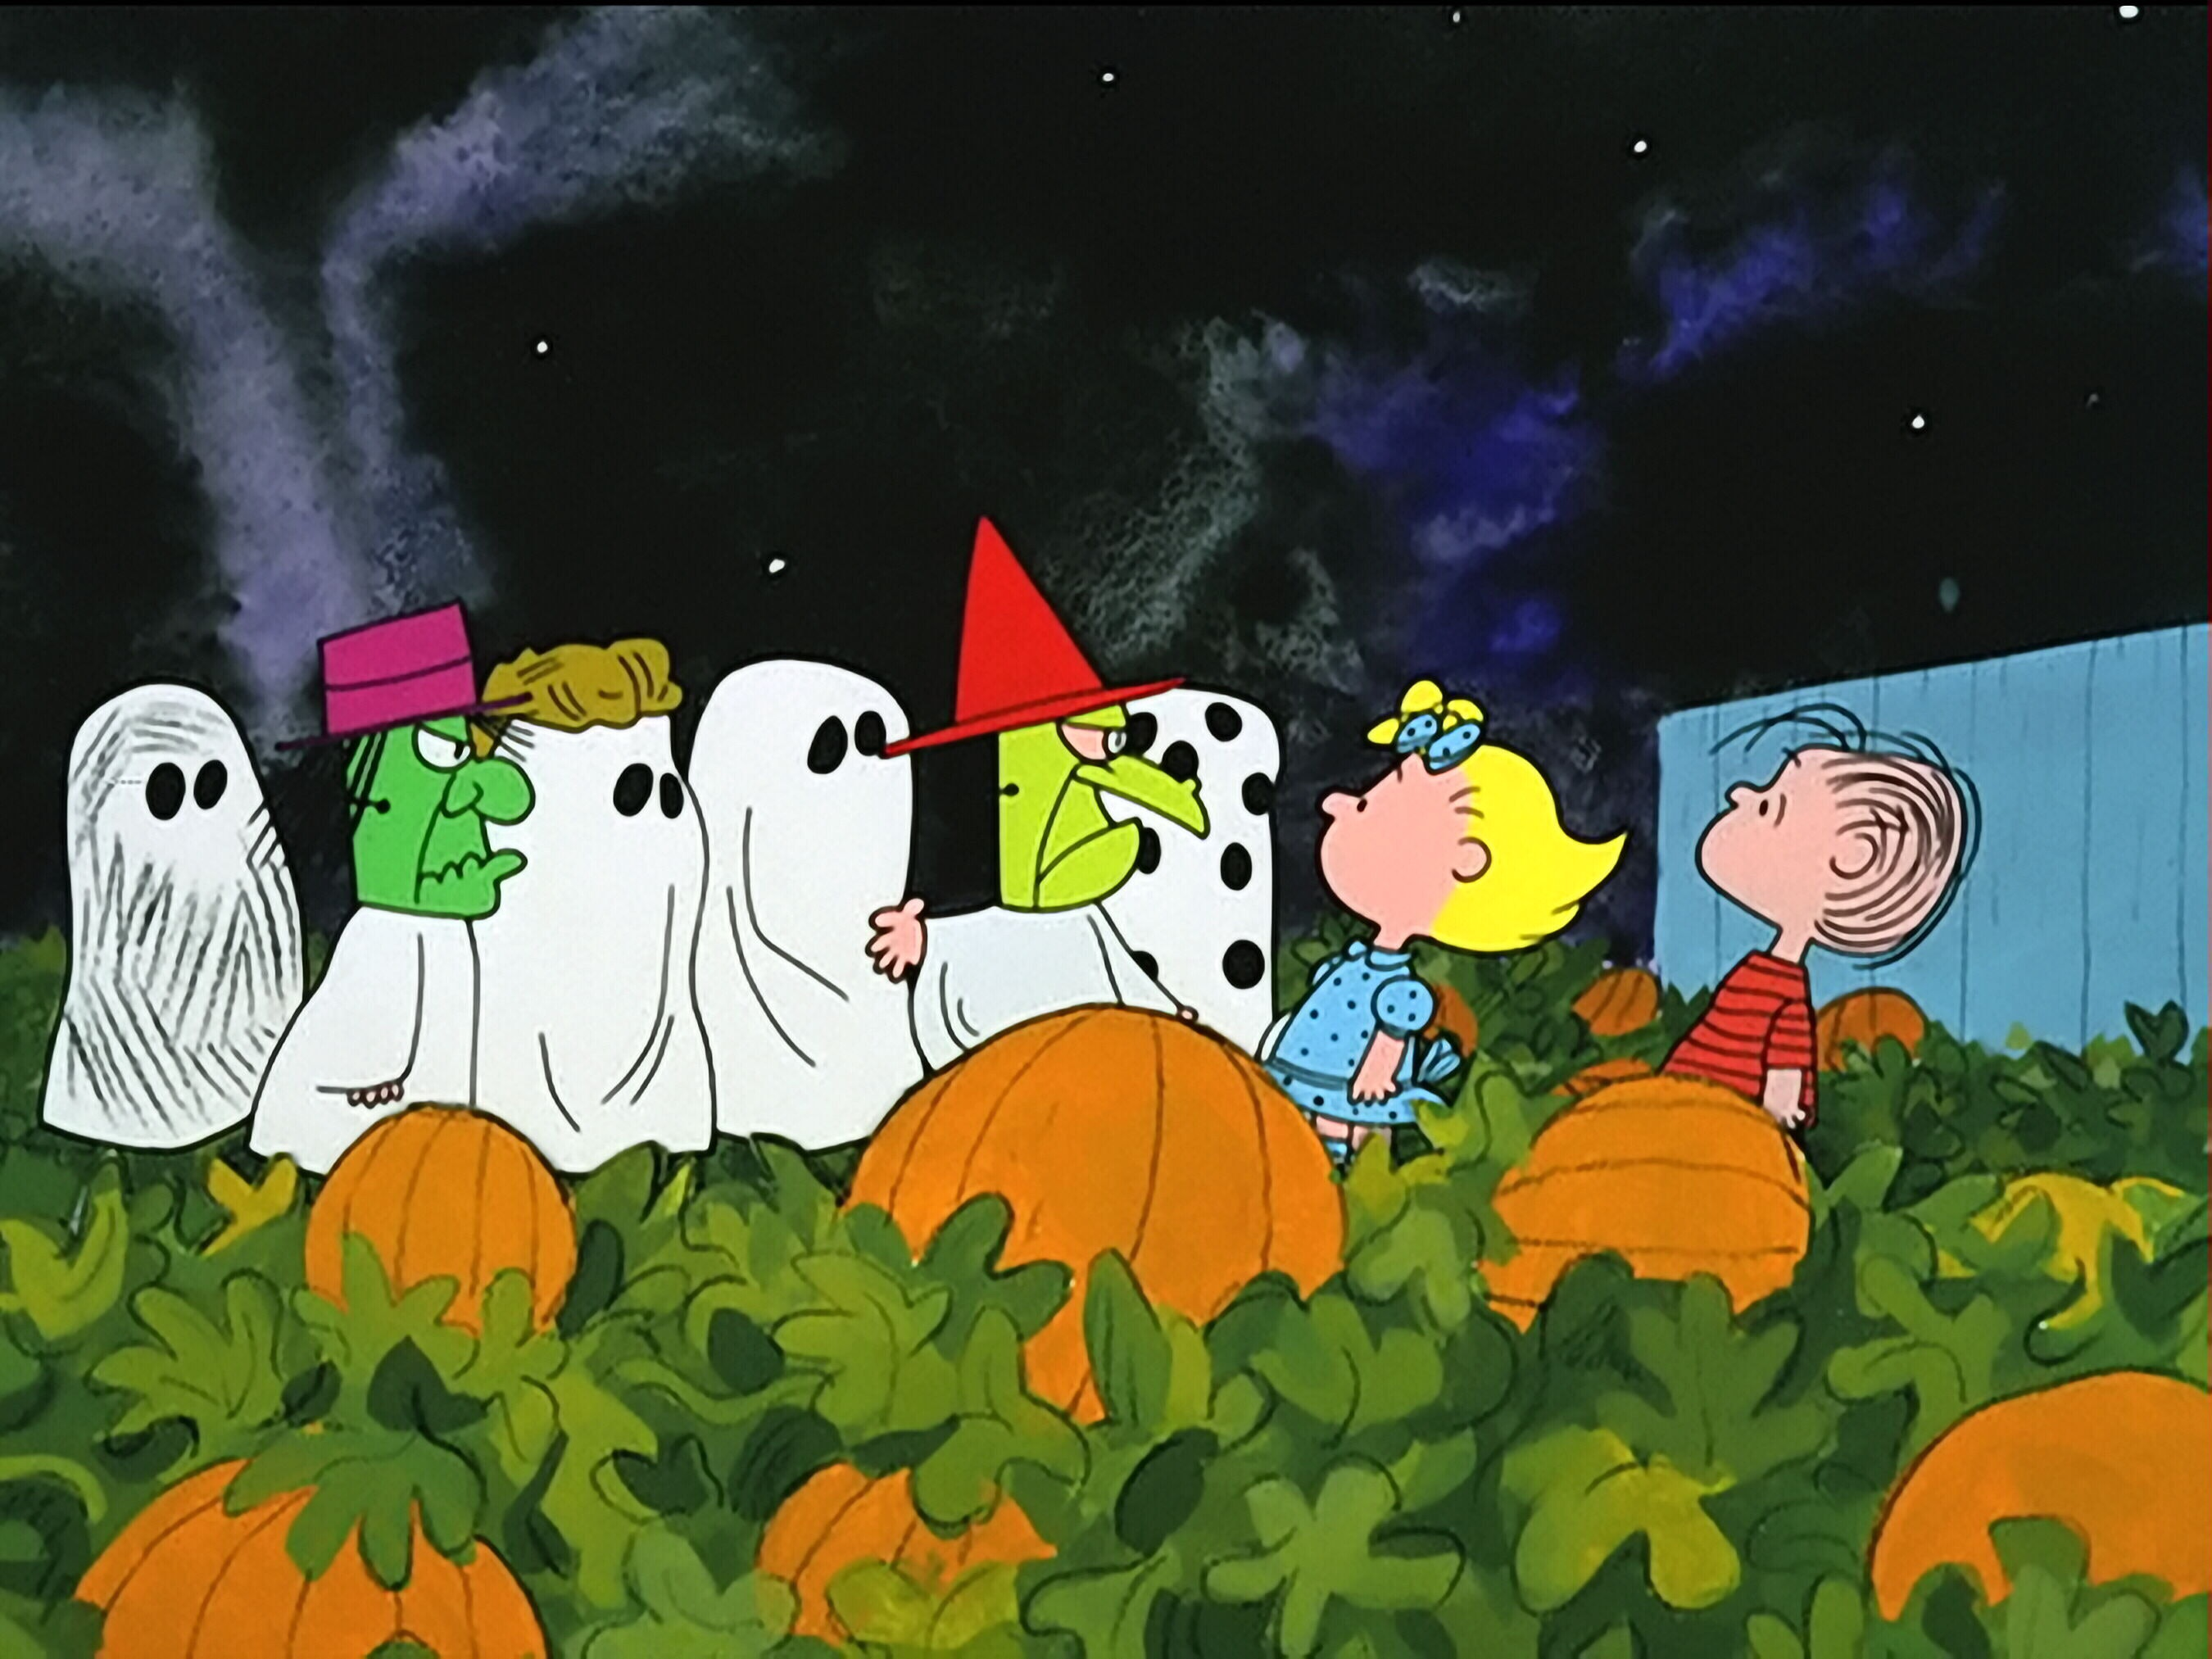 21 things you never noticed about 'it's the great pumpkin, charlie